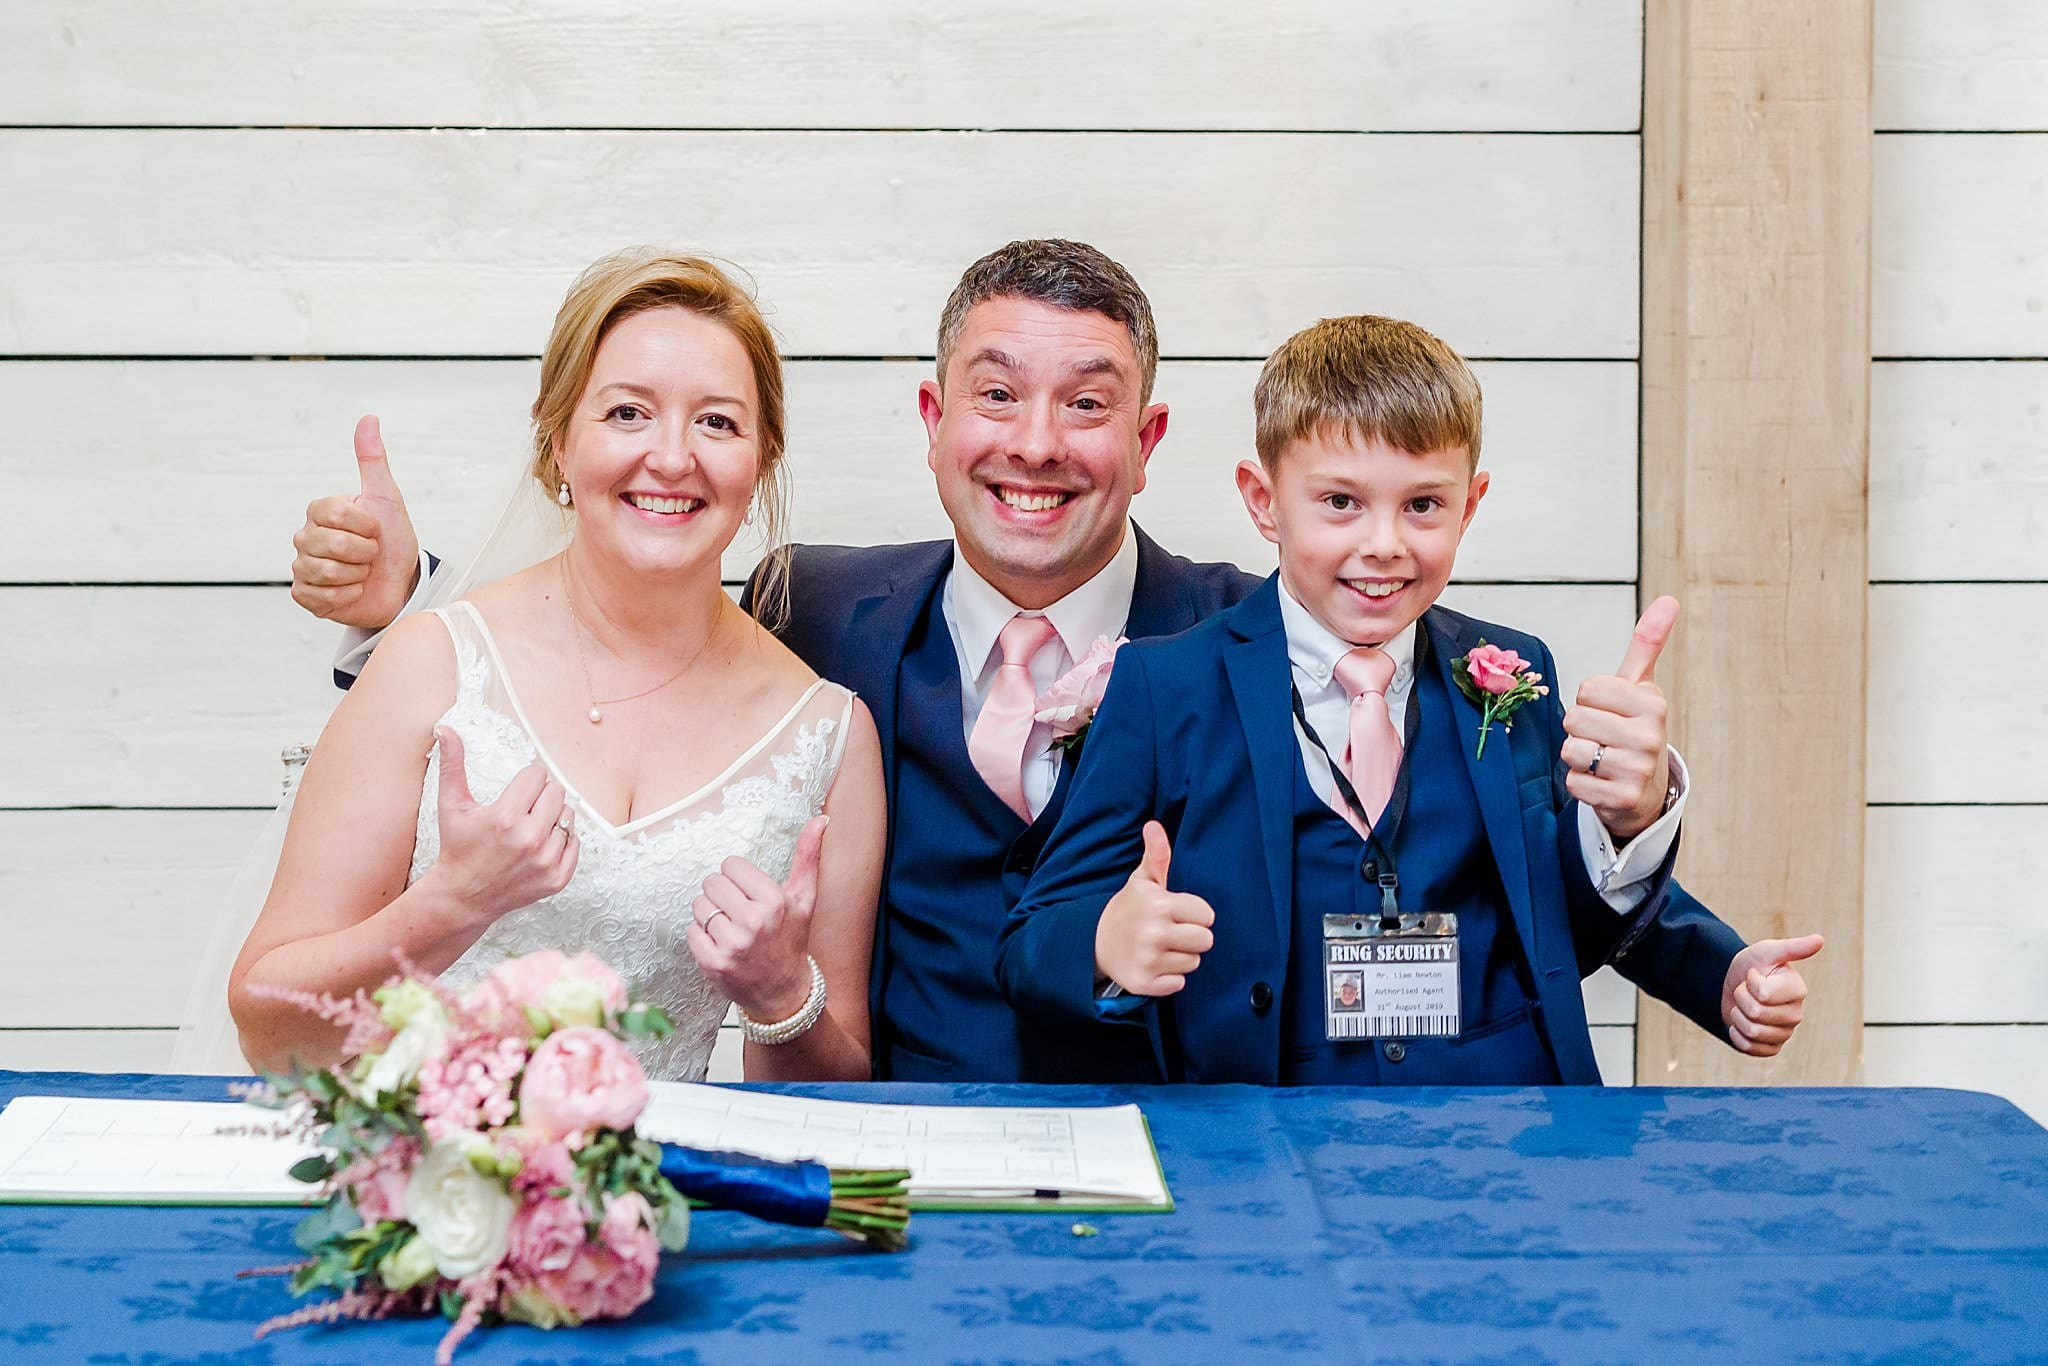 Bride, groom and their son all have thumbs up after their wedding ceremony at Newton House Barns